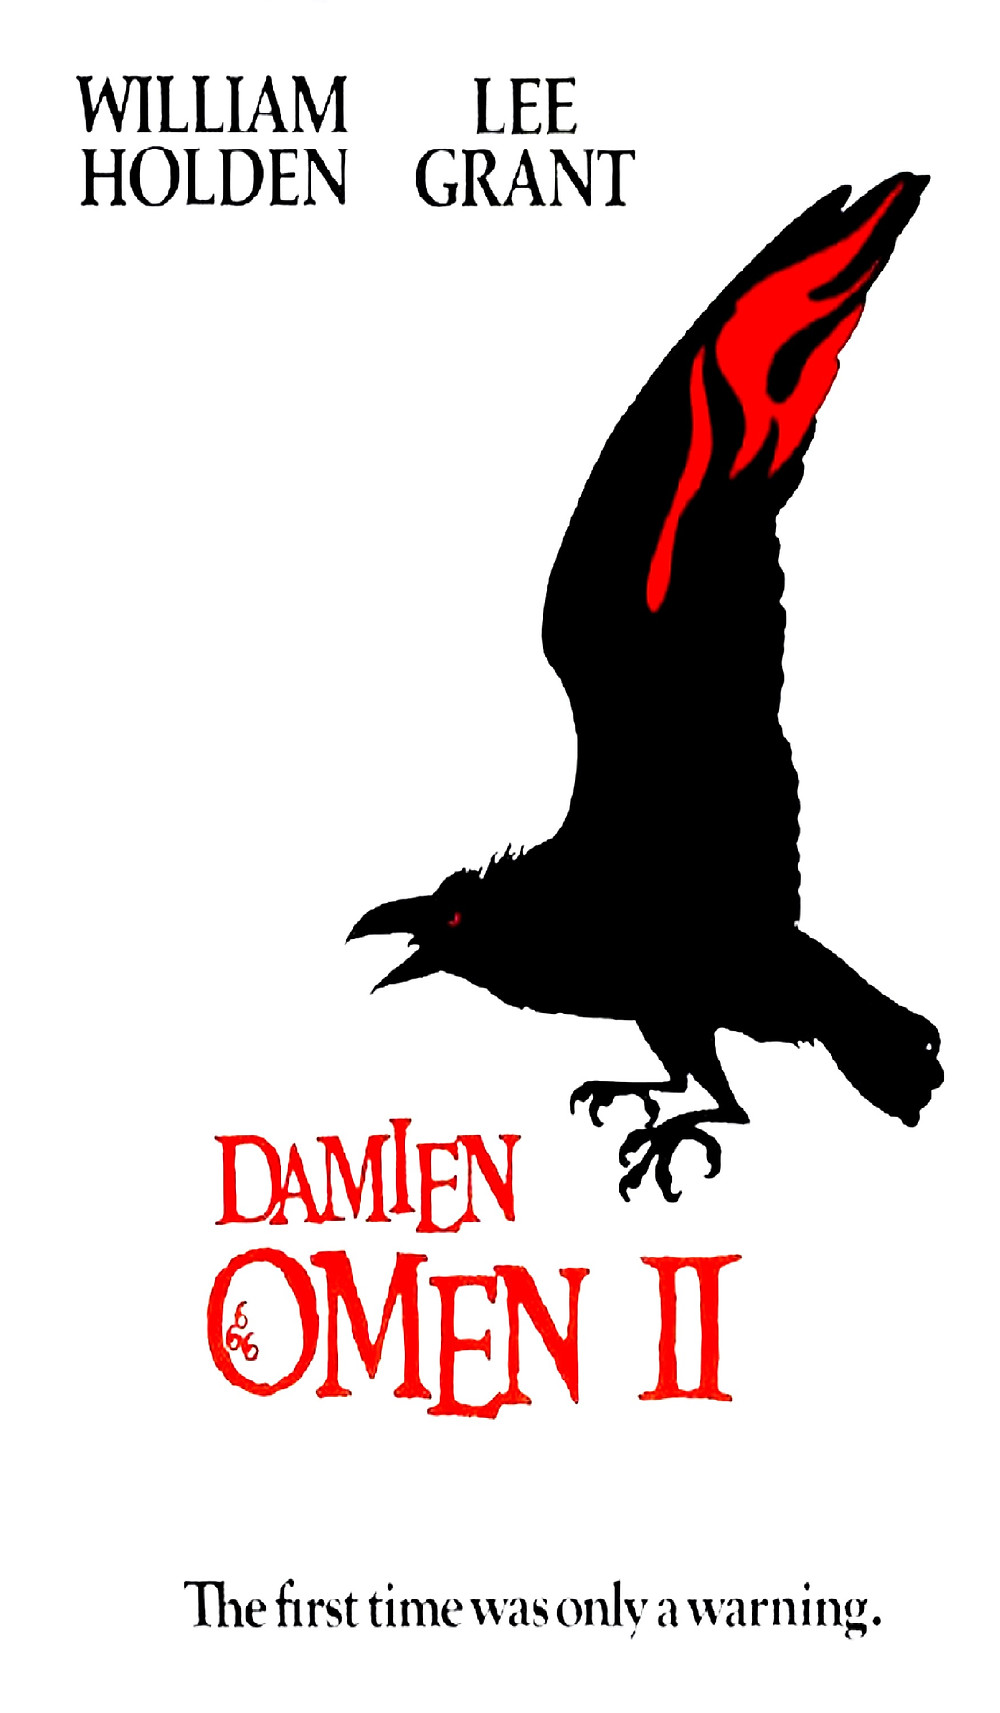 FILE PHOTO: A Poster of DAMIEN: OMEN II (1978). ©20th Century Studios